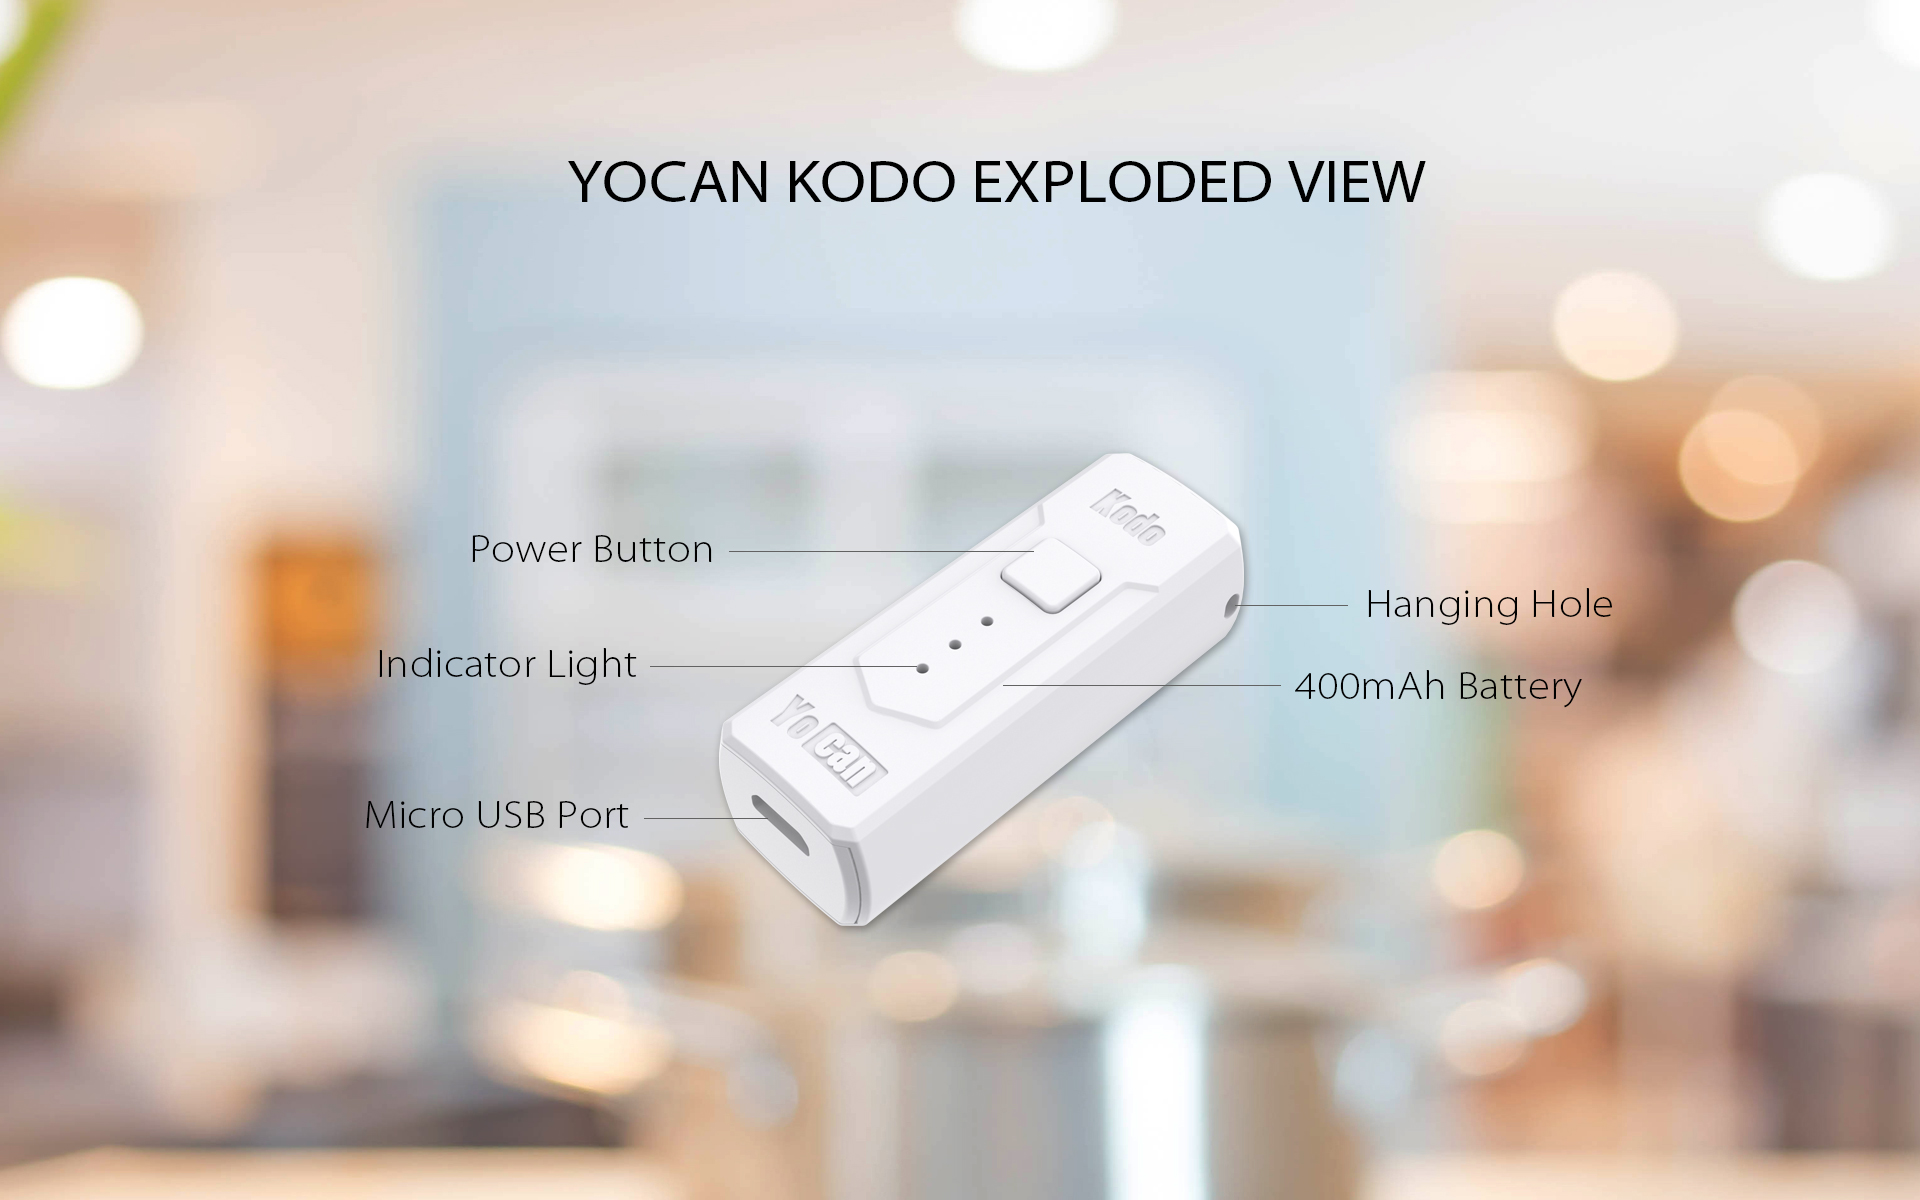 The Yocan Kodo Box Mod Battery exploded view.